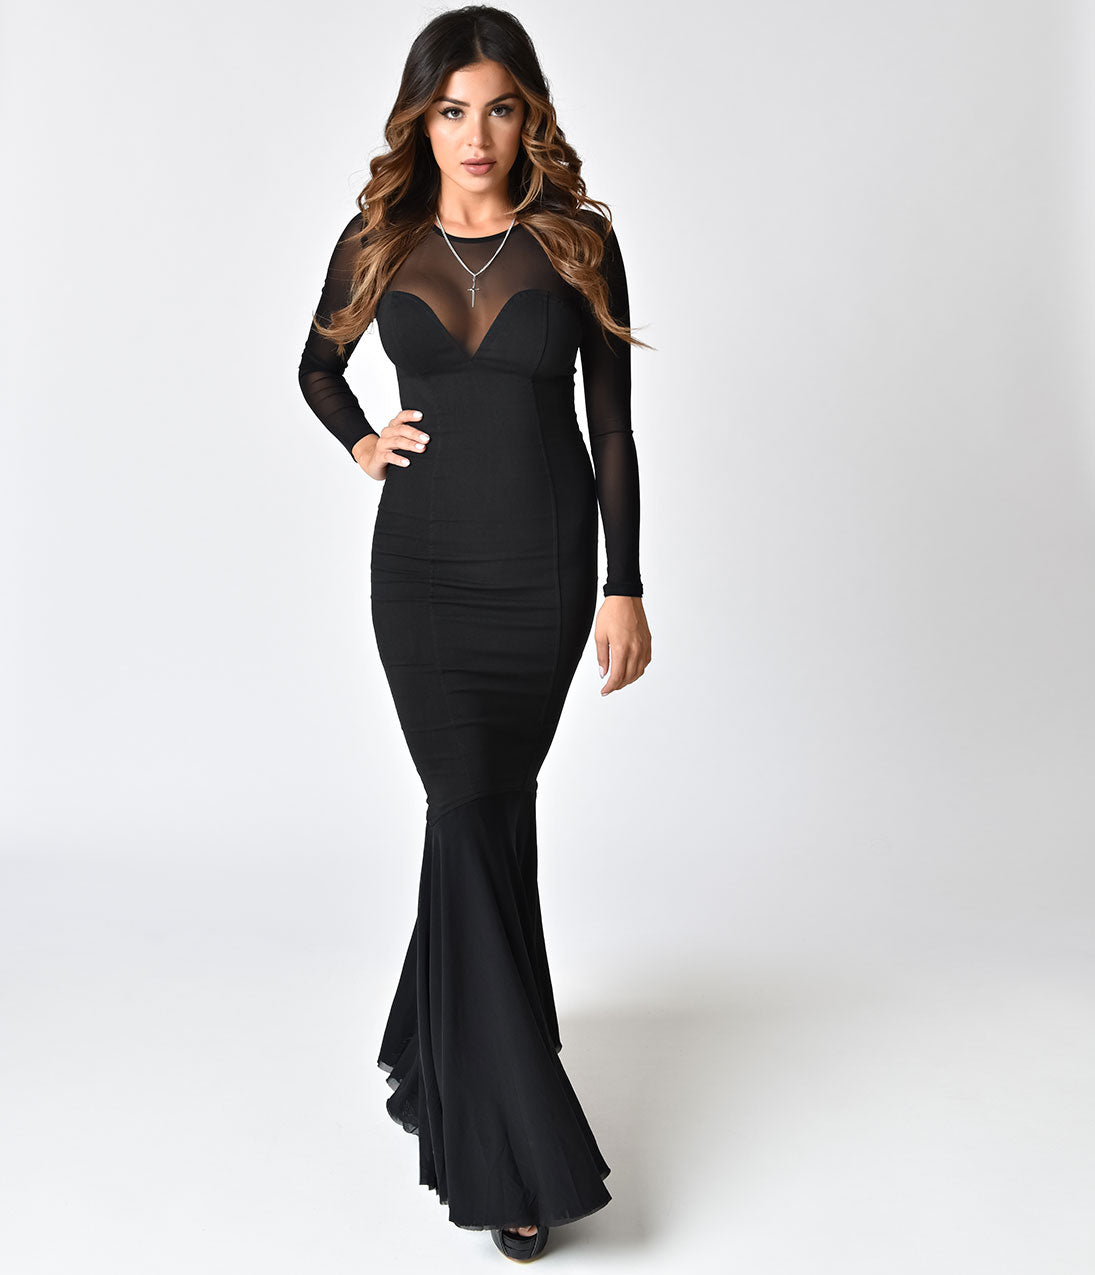 Vintage Evening Dresses and Formal Evening Gowns Collectif Black Fishtail Morticia Wiggle Gown $70.00 AT vintagedancer.com